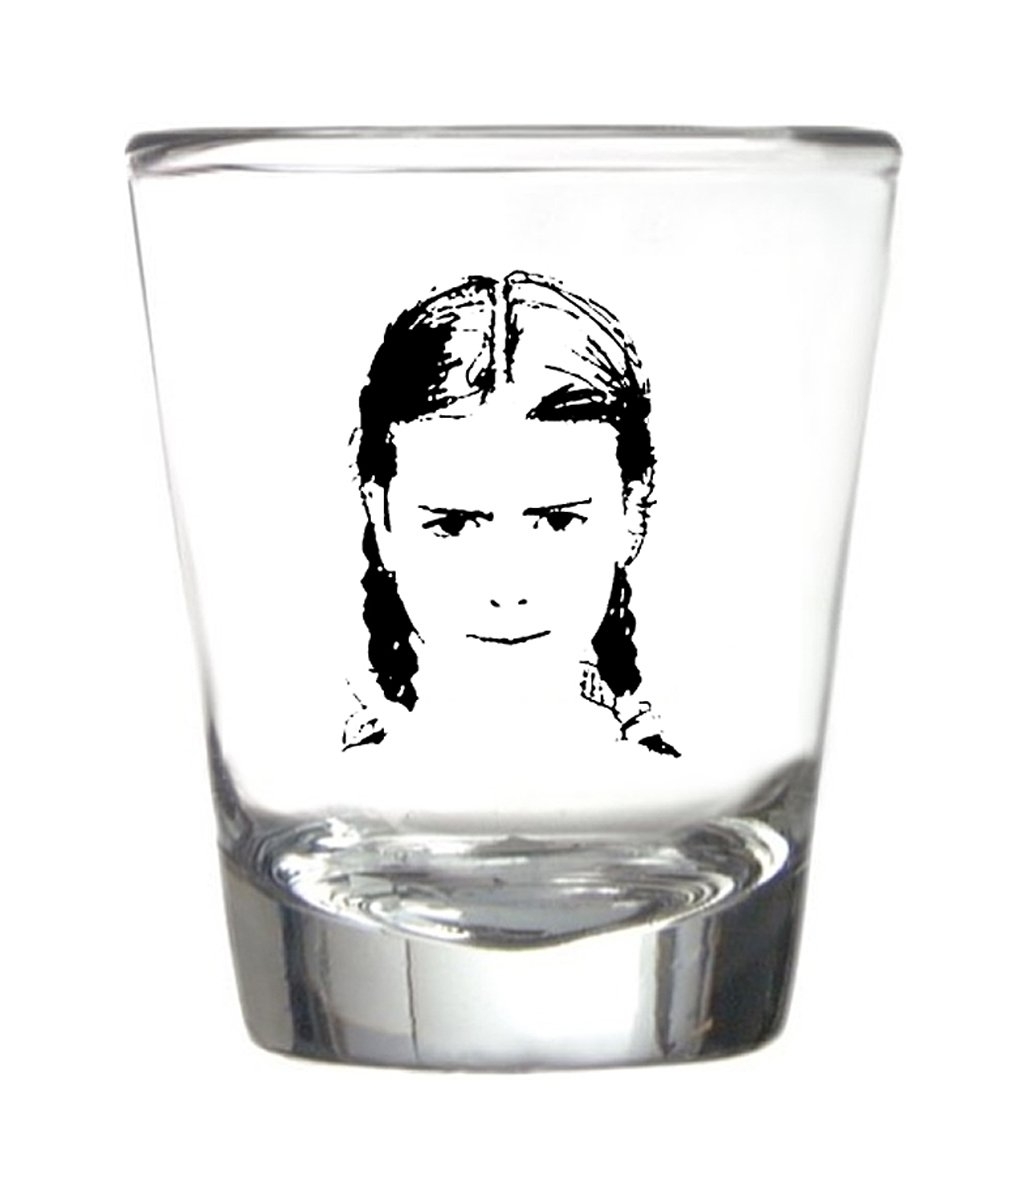 A black line drawing on a shot glass of a serious looking young girl with pigtails.